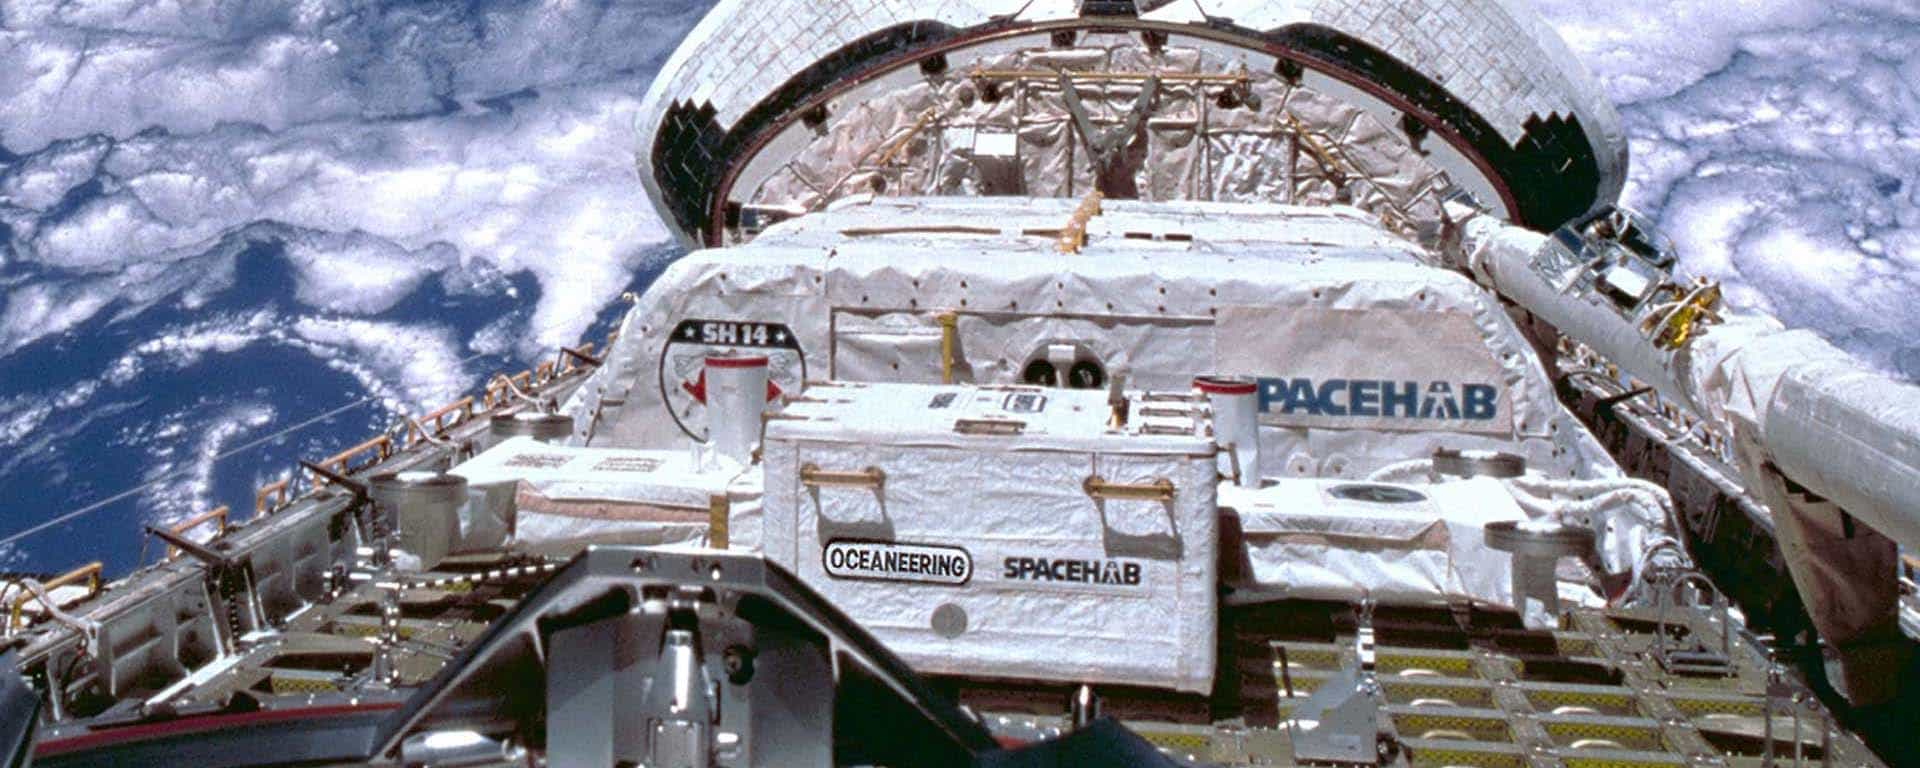 Space Shuttle | Oceaneering